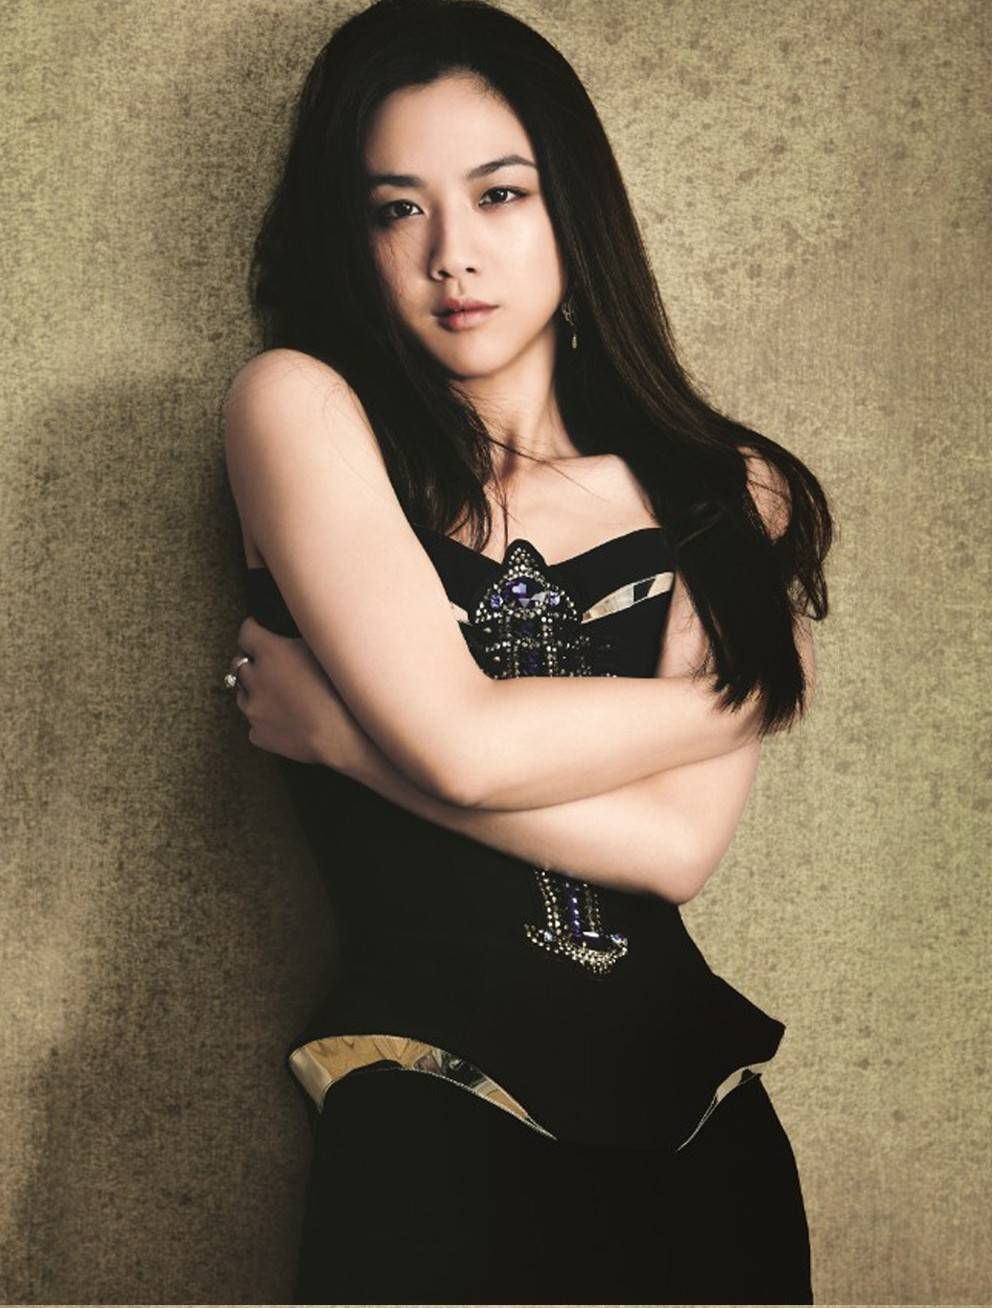 Tang Wei photo 79 of 119 pics, wallpaper - photo #623446 - ThePlace2